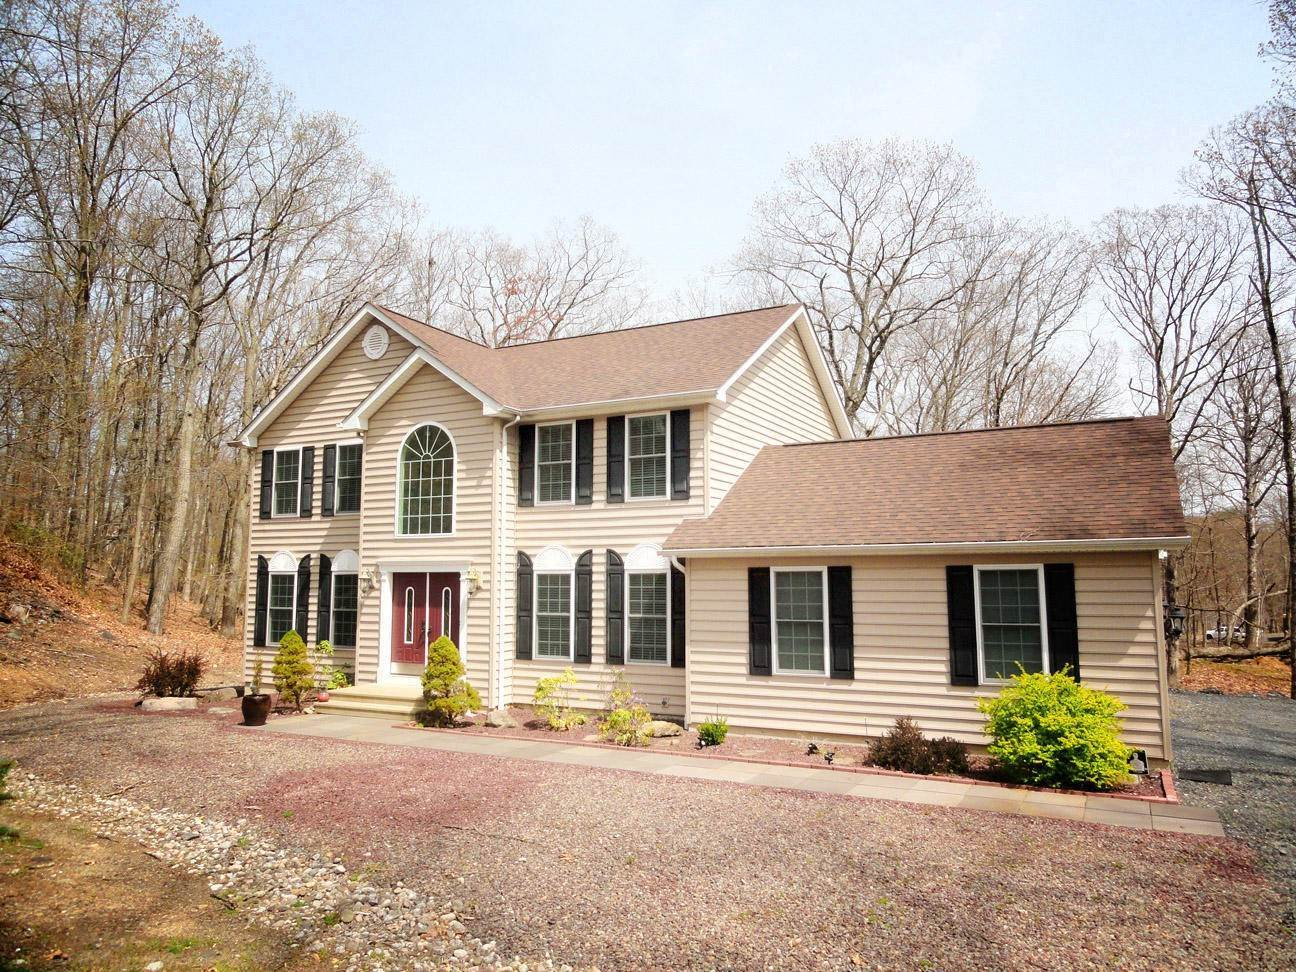 3. Single Family Homes for Sale at 2199 Lancaster Dr Bushkill, Pennsylvania 18324 United States